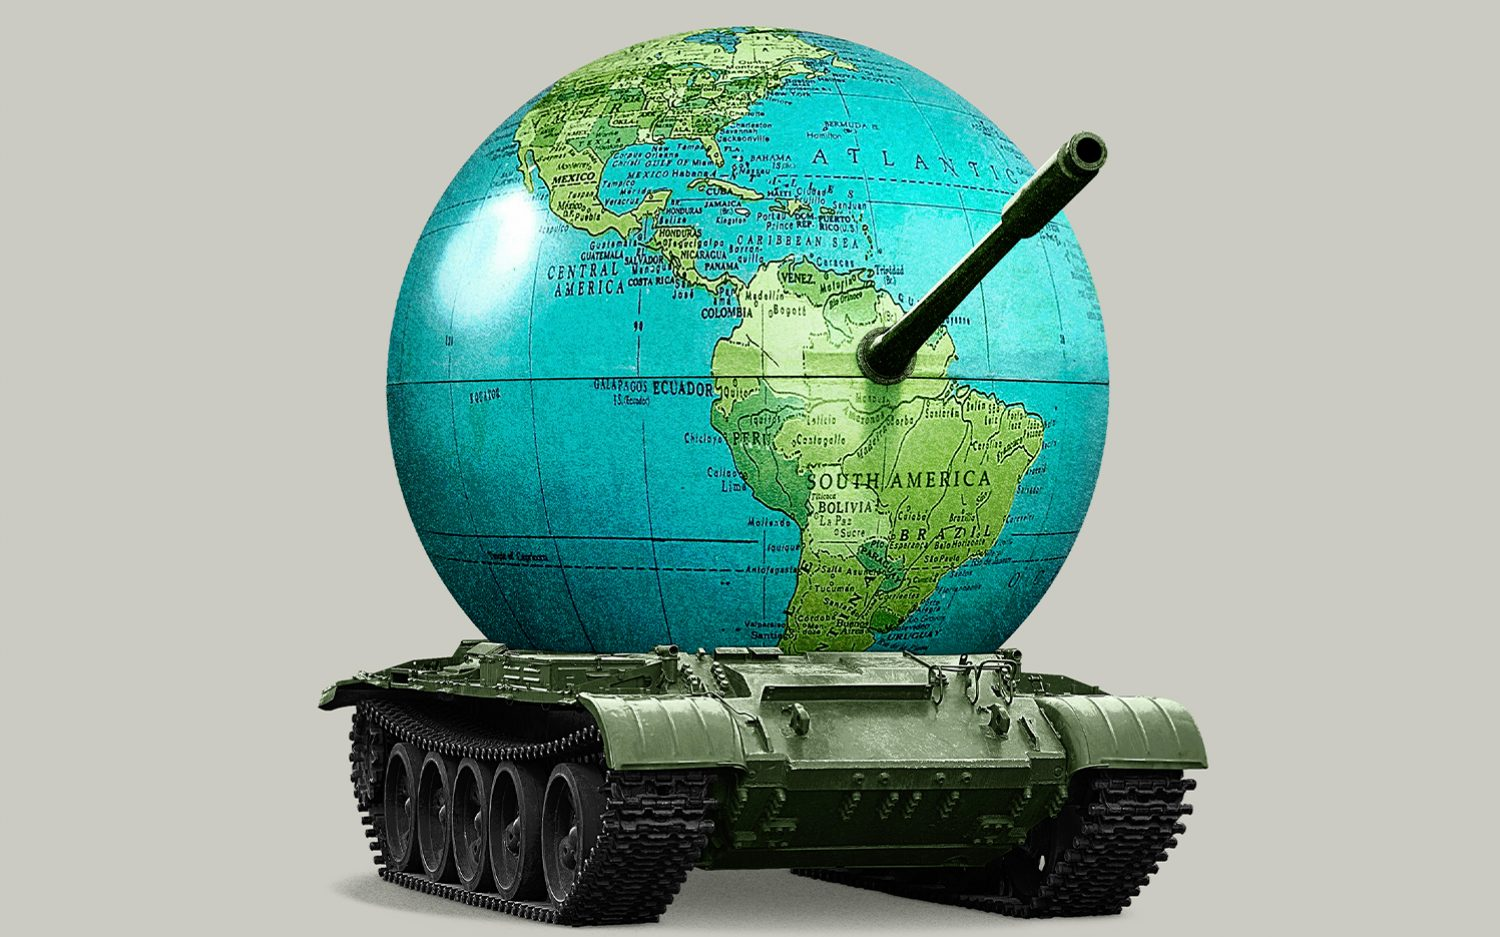 The race to rearmament